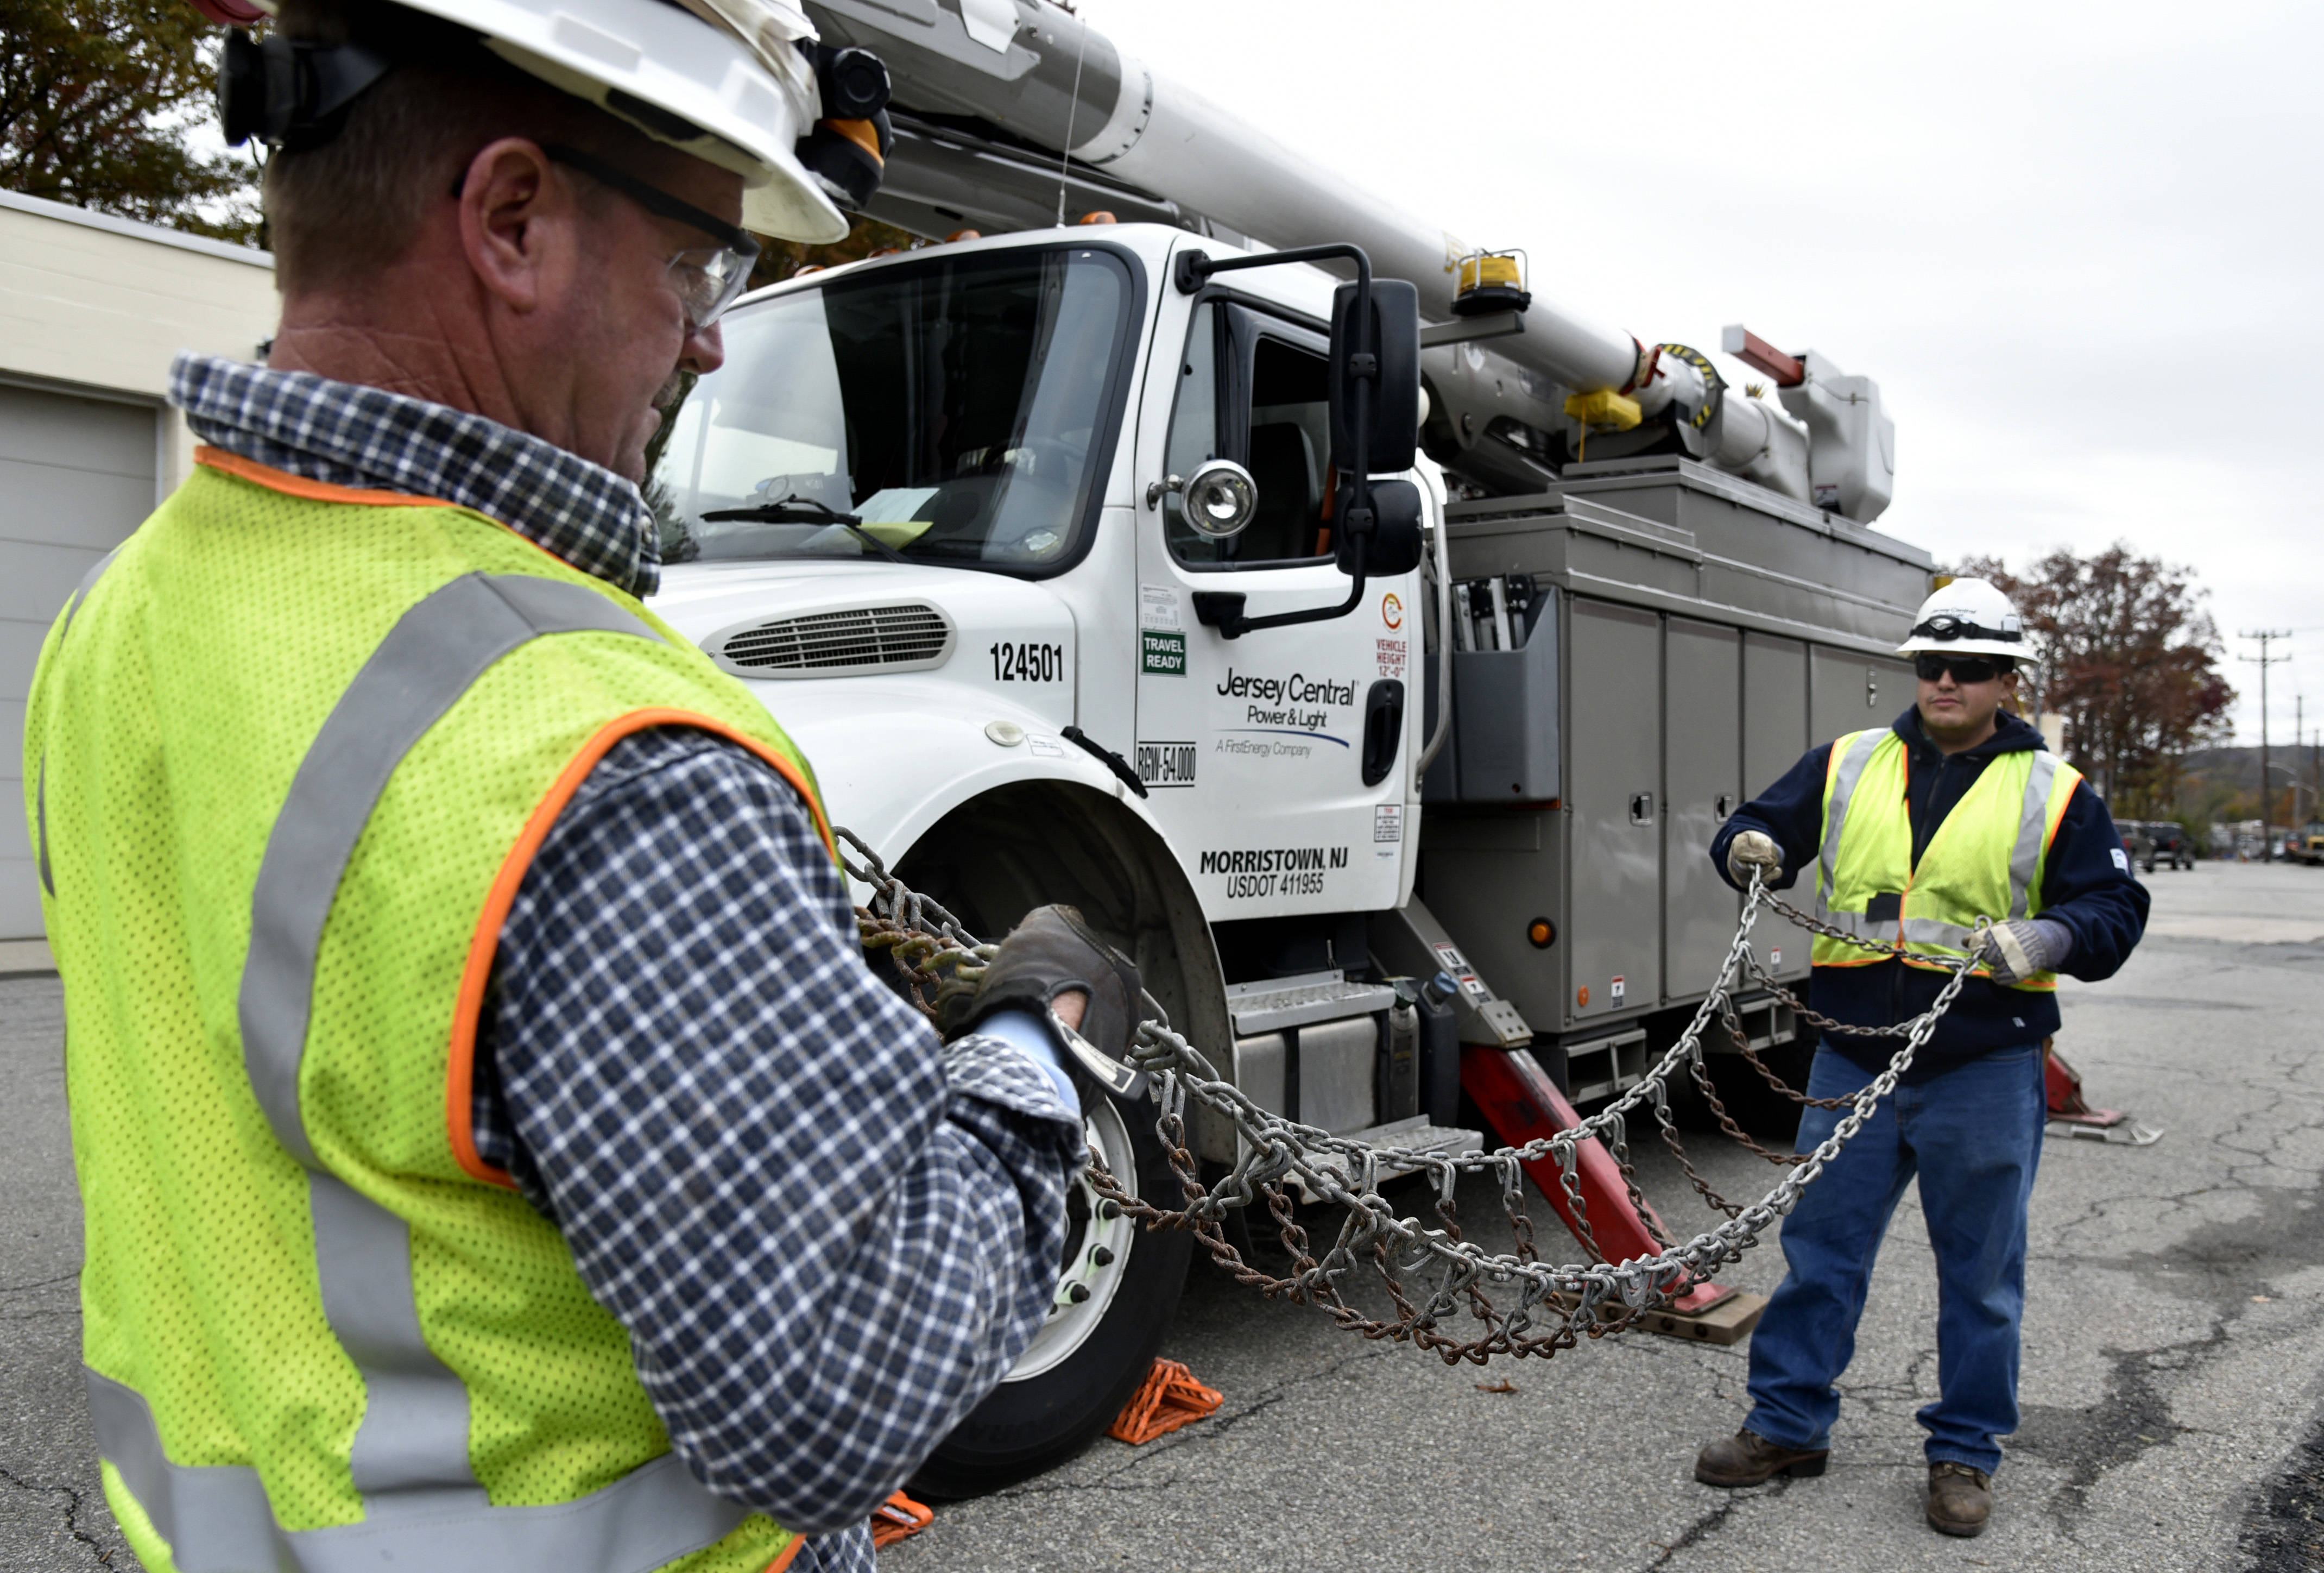 9df309cfc6c5e000bb08_JCPL_Crews_preparing_for_Winter_Weather_ _checking_snow_chains_jpg_2